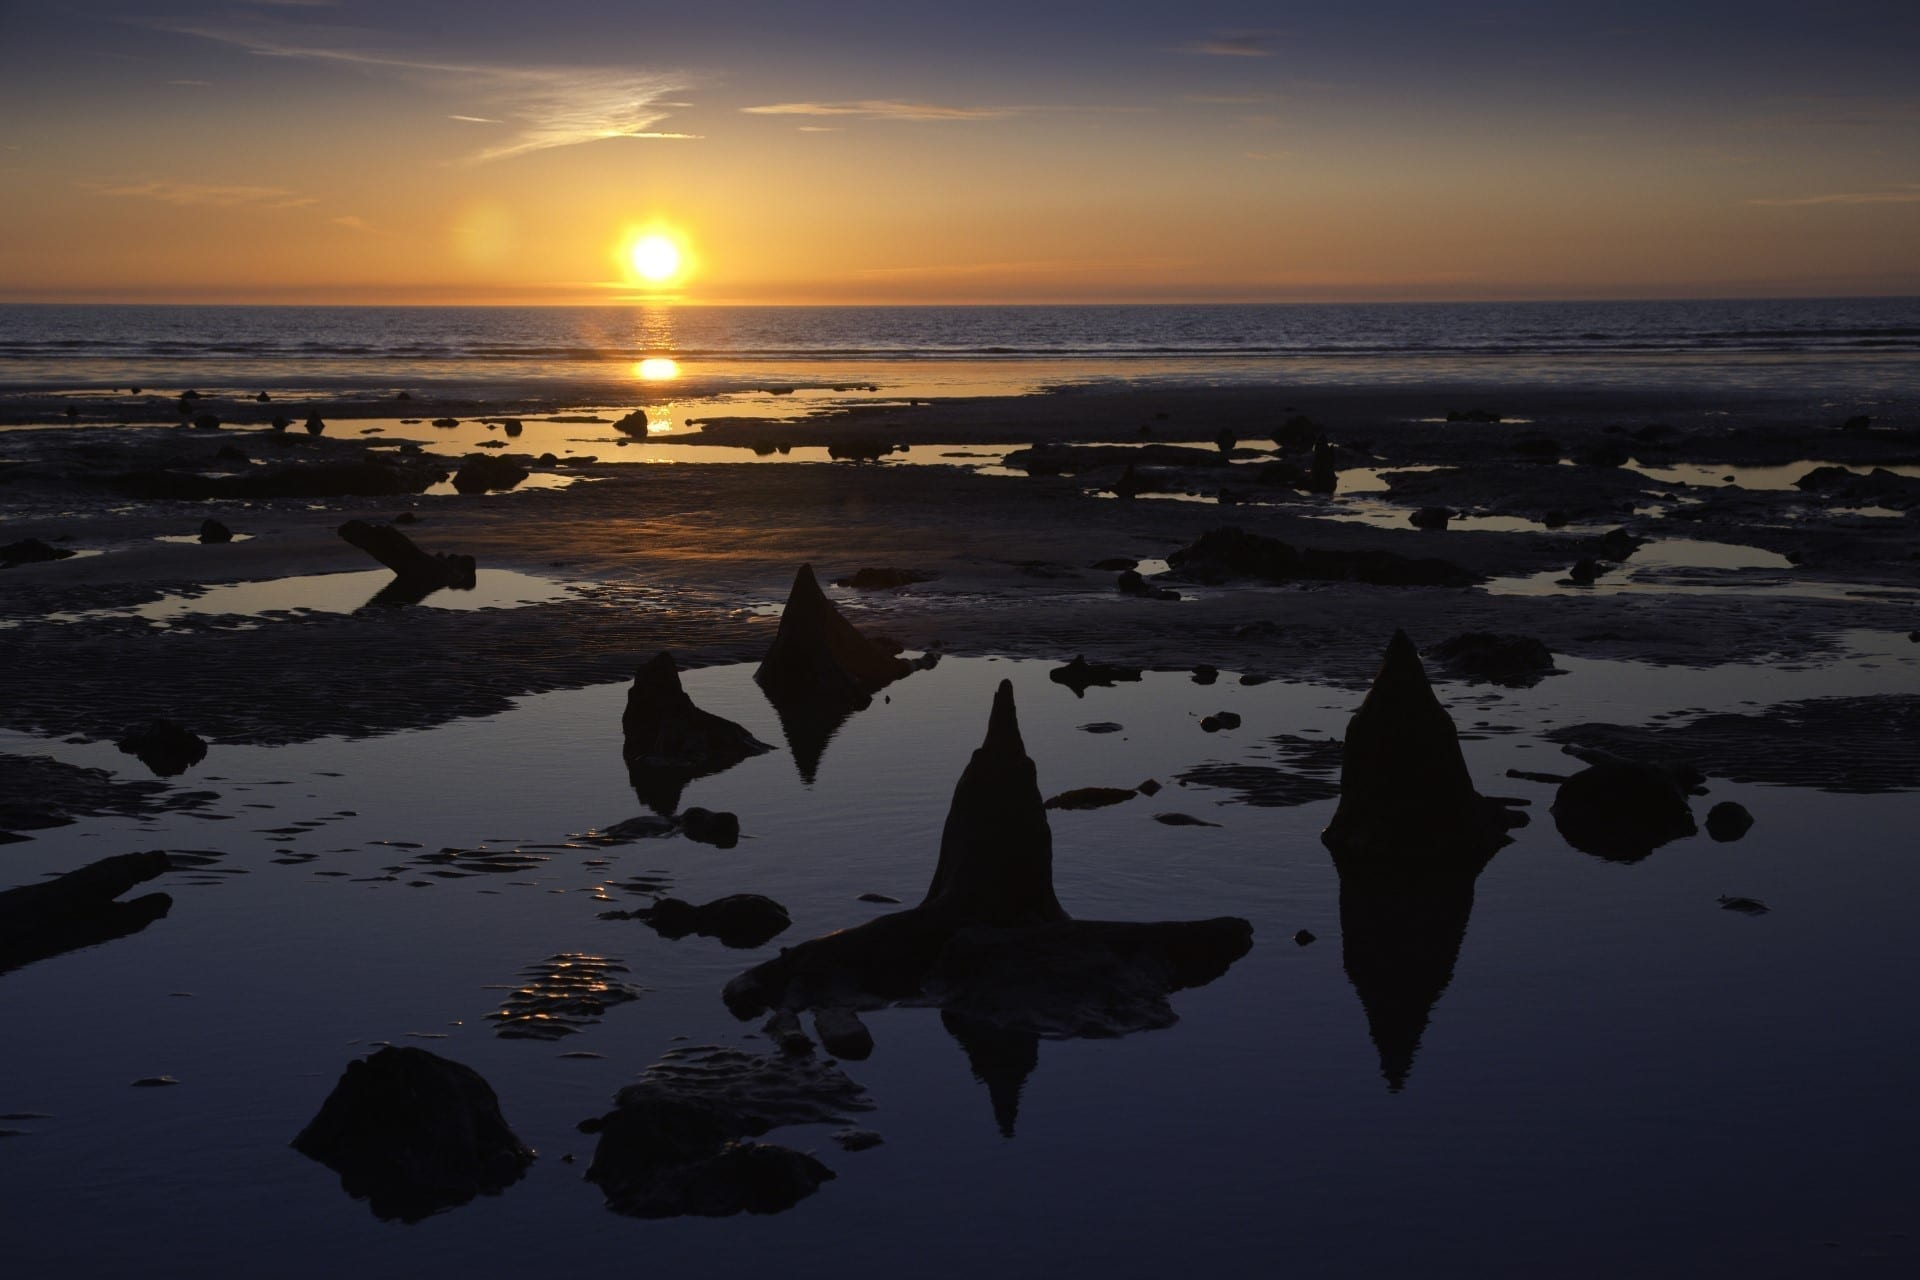 Wales beach at sunset